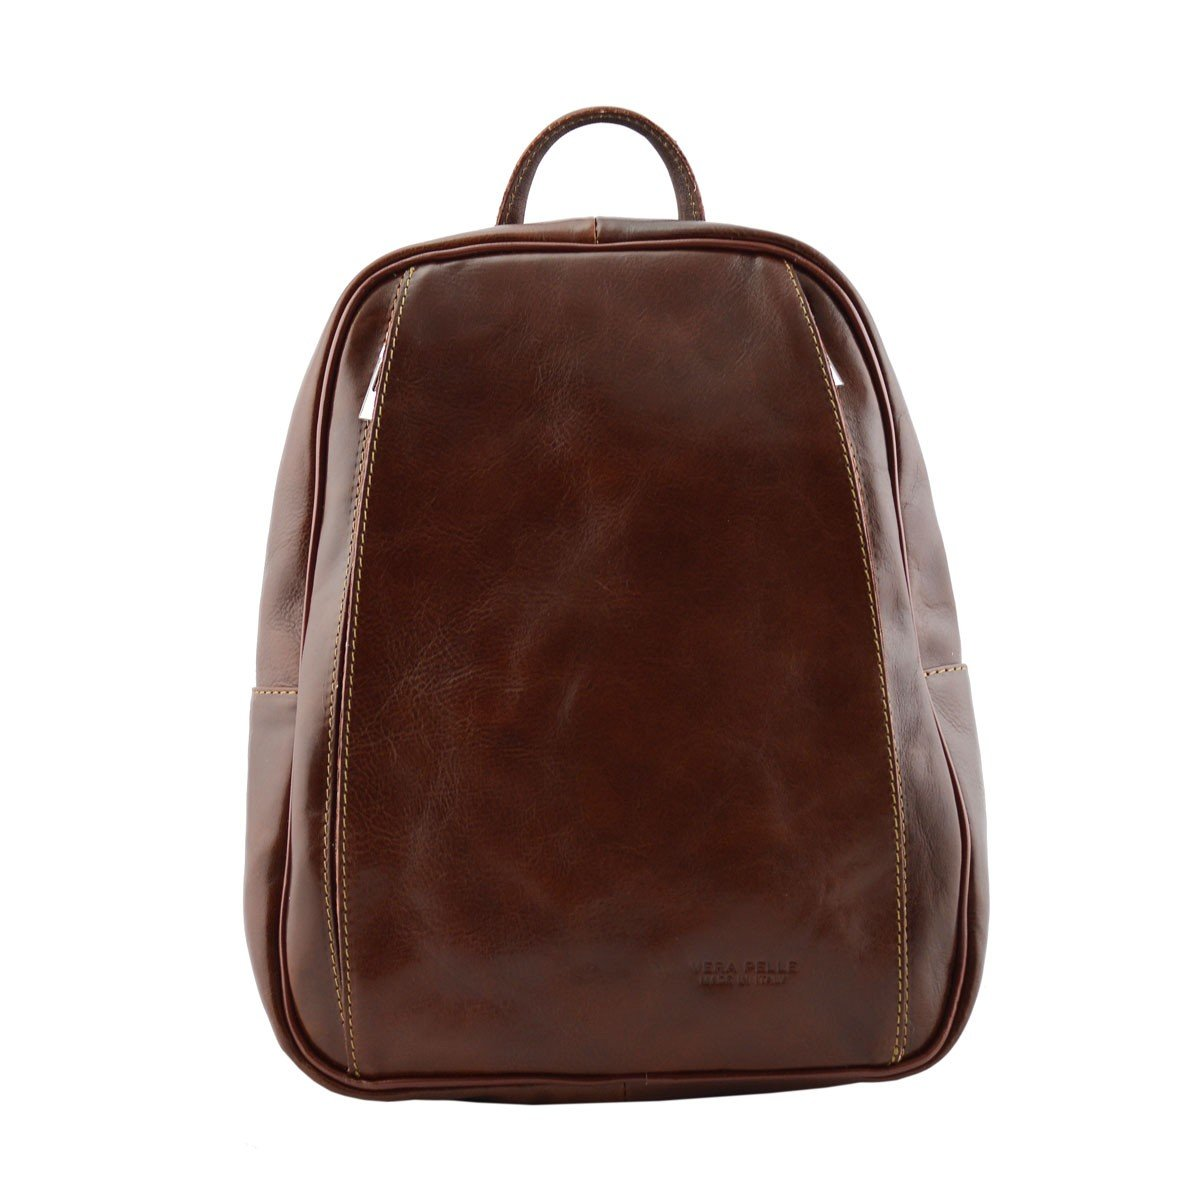 Dream Leather Bags Made in Italy Genuine Leather レディース 533-2 US サイズ: 1 M US カラー: ブラウン   B078XQTDC8